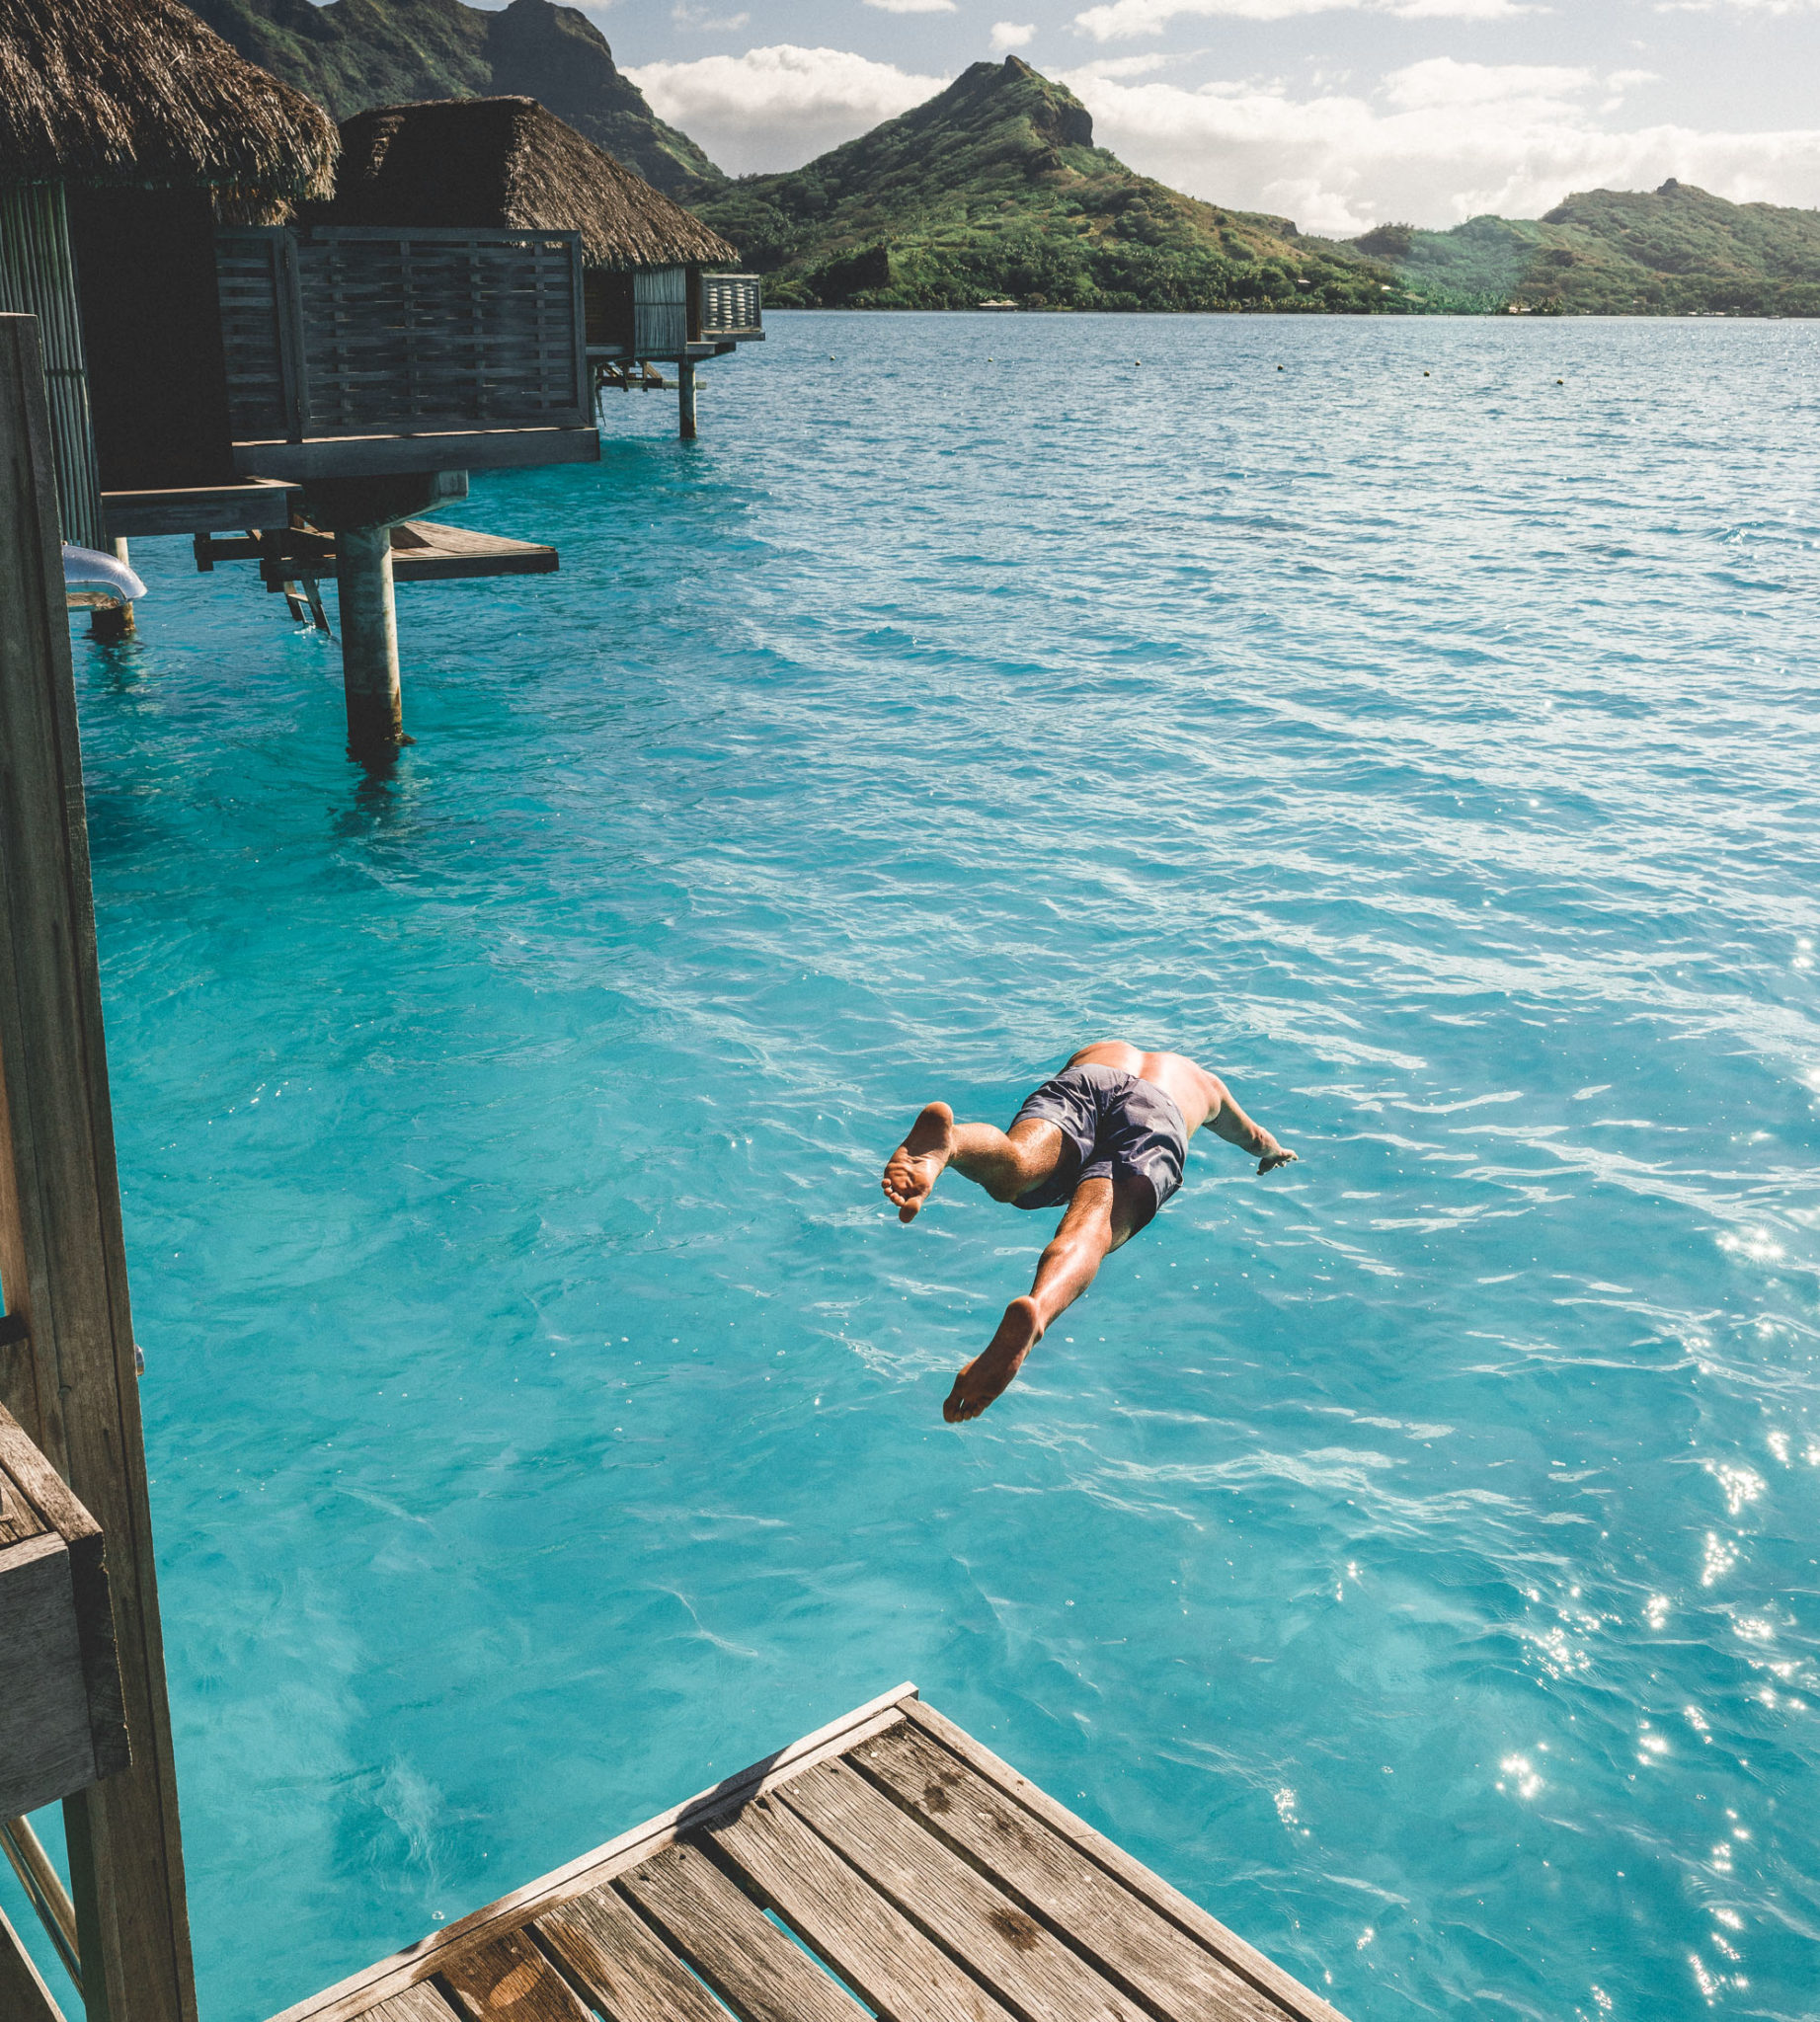 Overwater bungalow jump at four seasons bora bora in Tahiti for our honeymoon